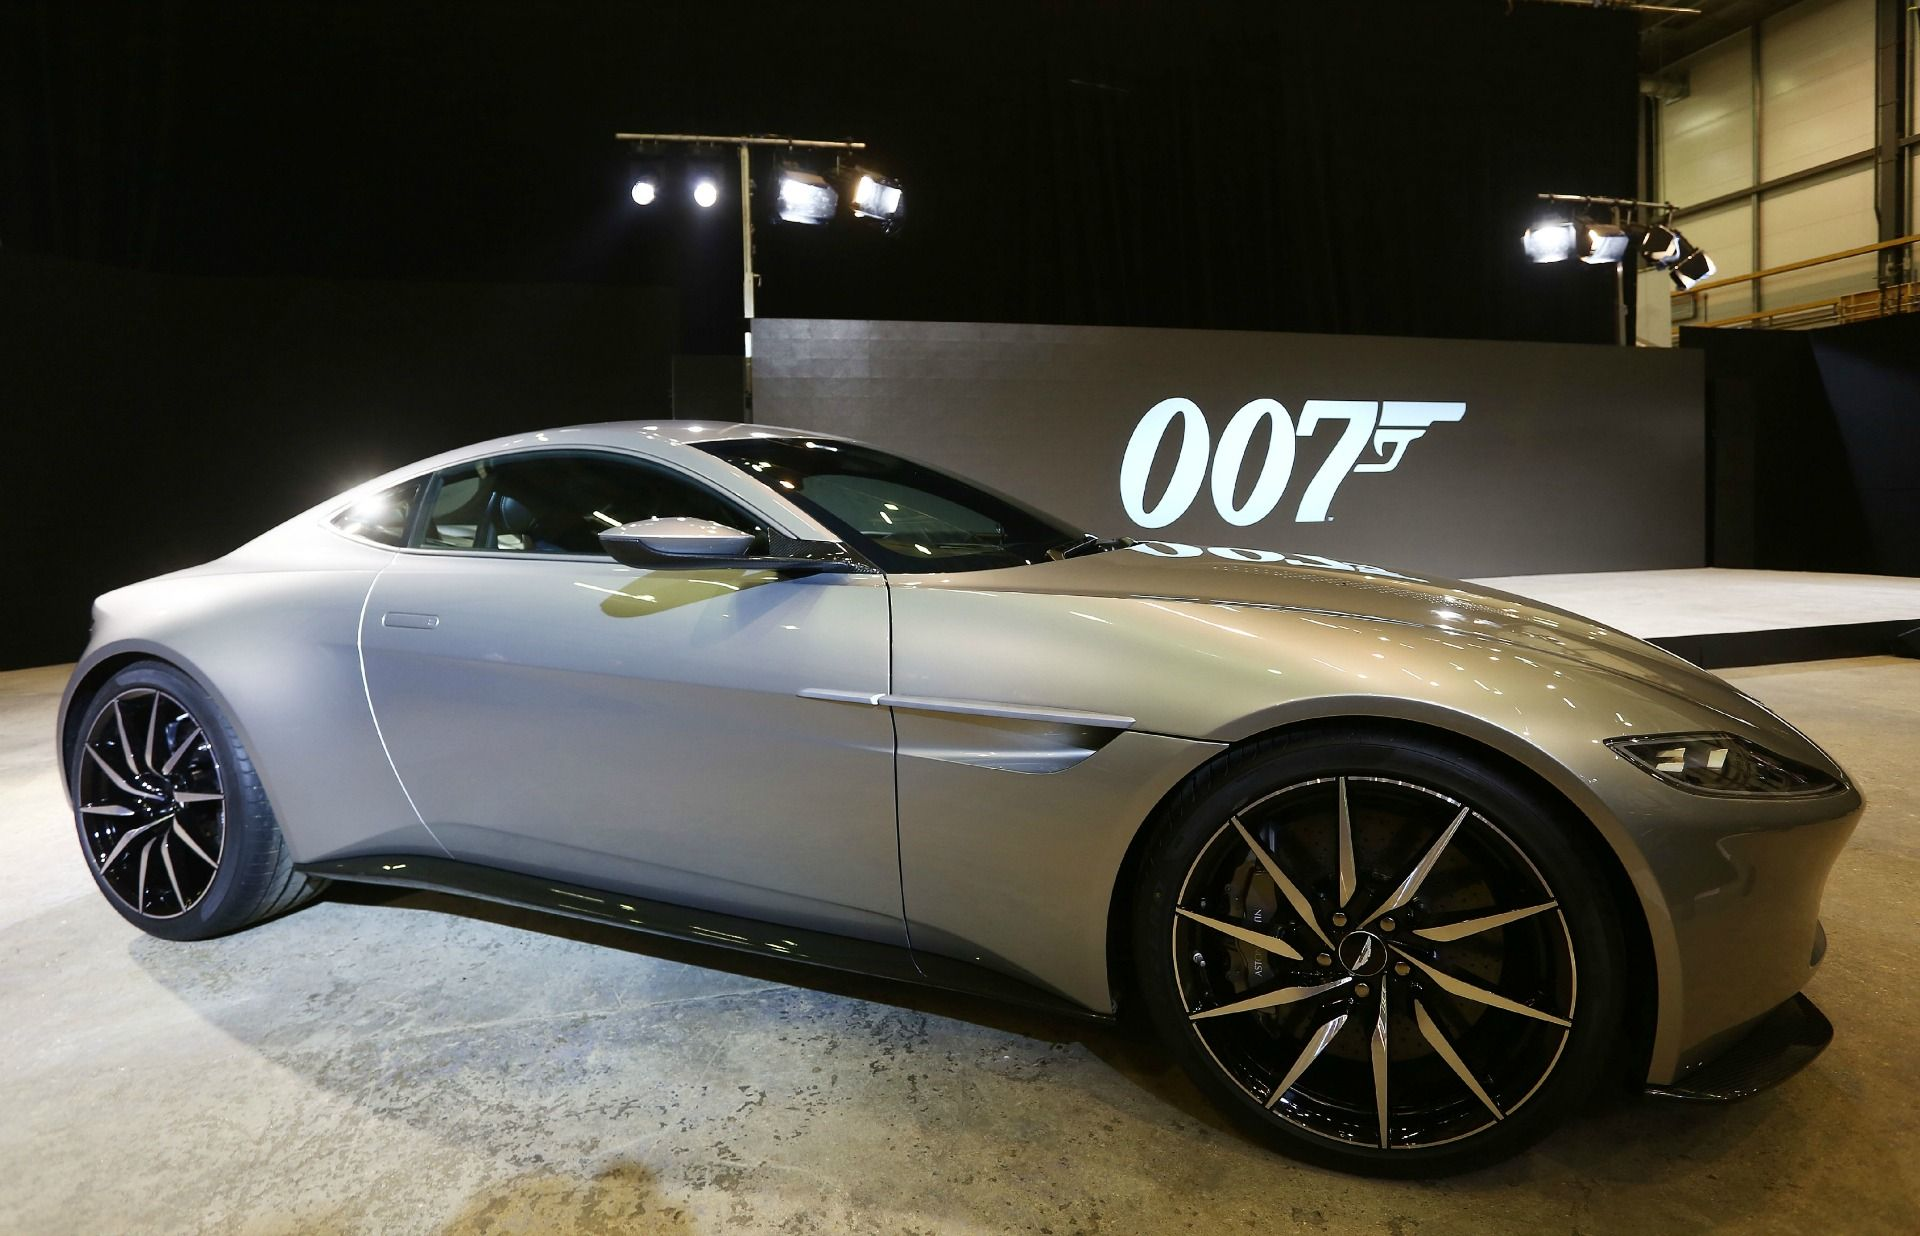 007's stunning new car. aston martin. also revealed was the